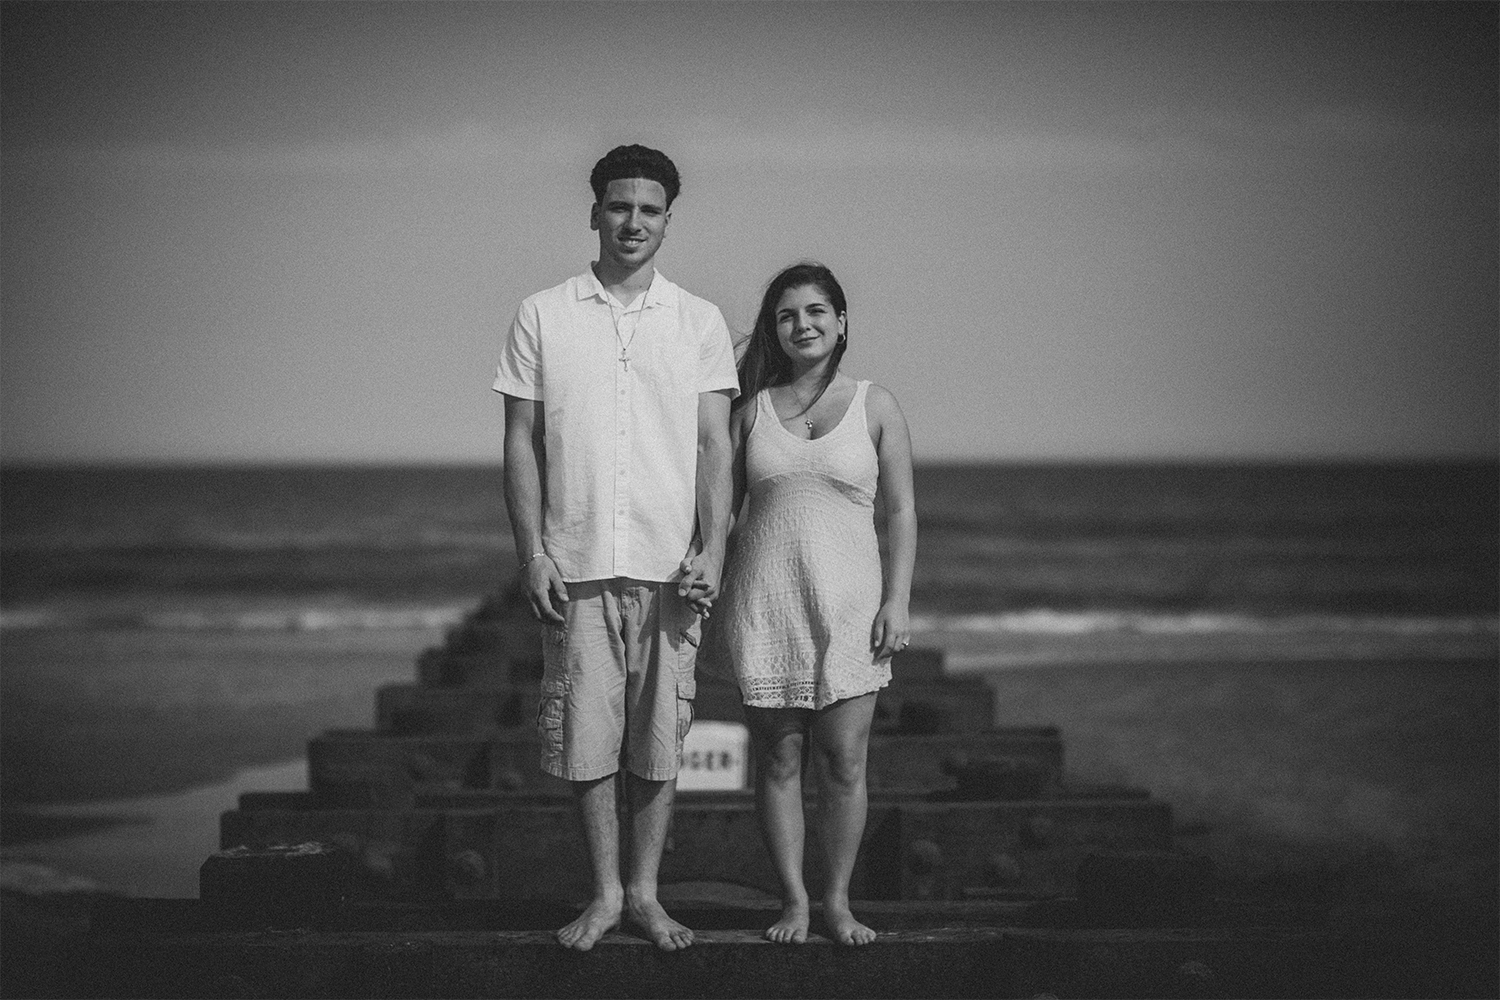 New_Jersey_Wedding_Photography_Engagement_Session_Beach_Session_Couple_009.jpg